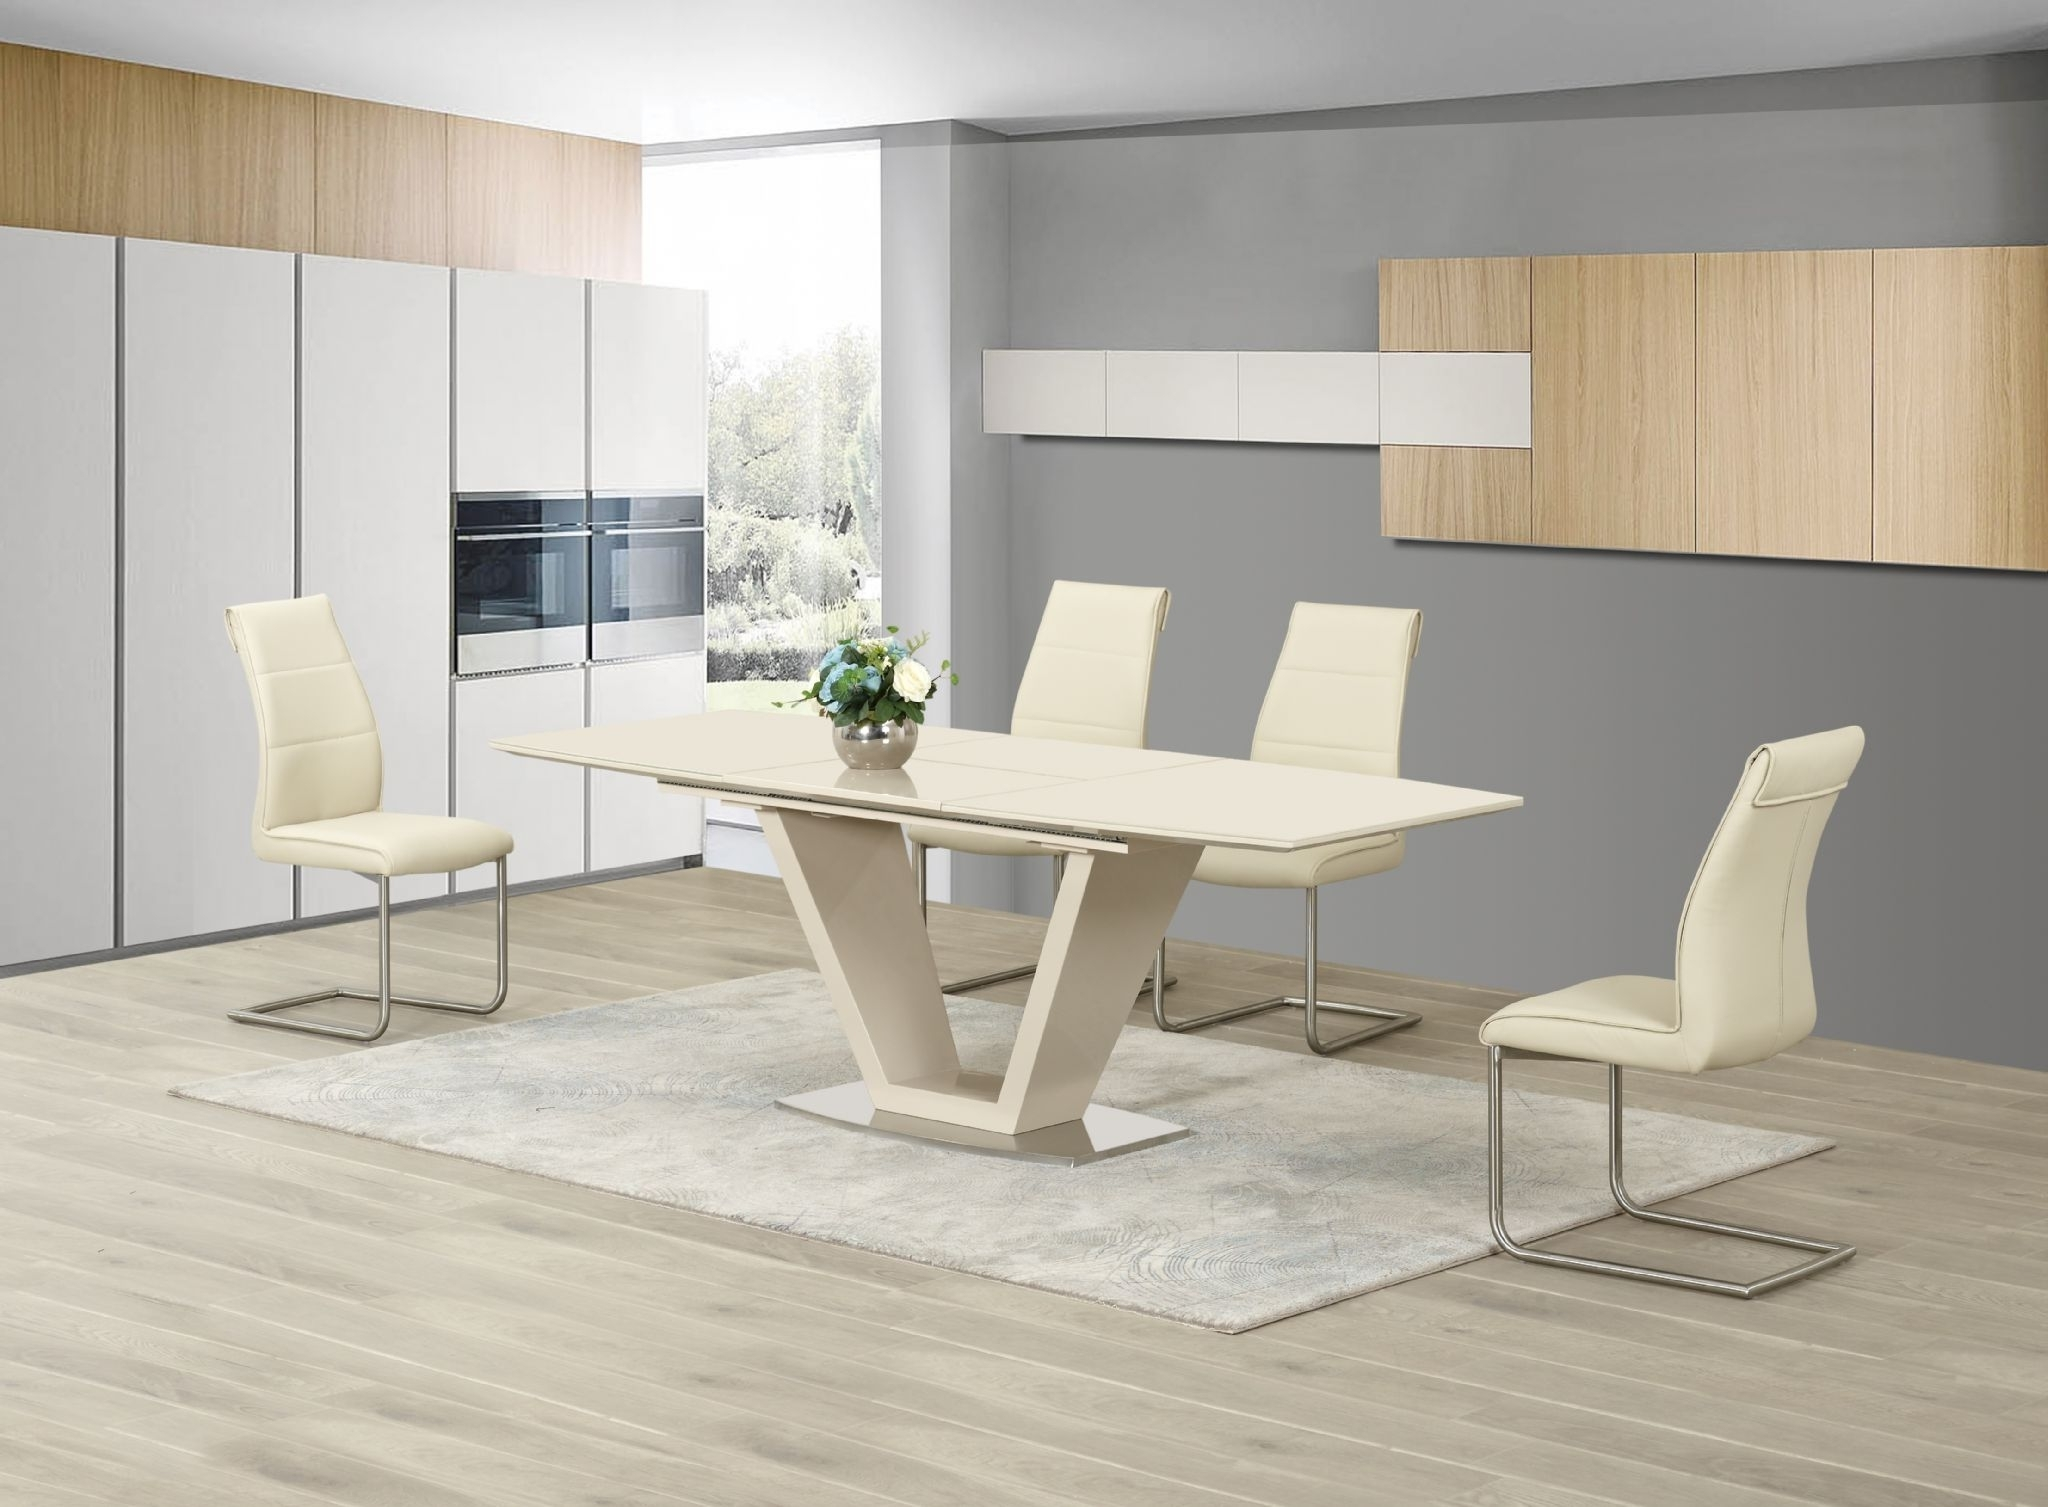 Ga Loriga Cream Gloss Glass Designer Dining Table Extending 160 220 Regarding Well Known High Gloss White Extending Dining Tables (View 14 of 25)